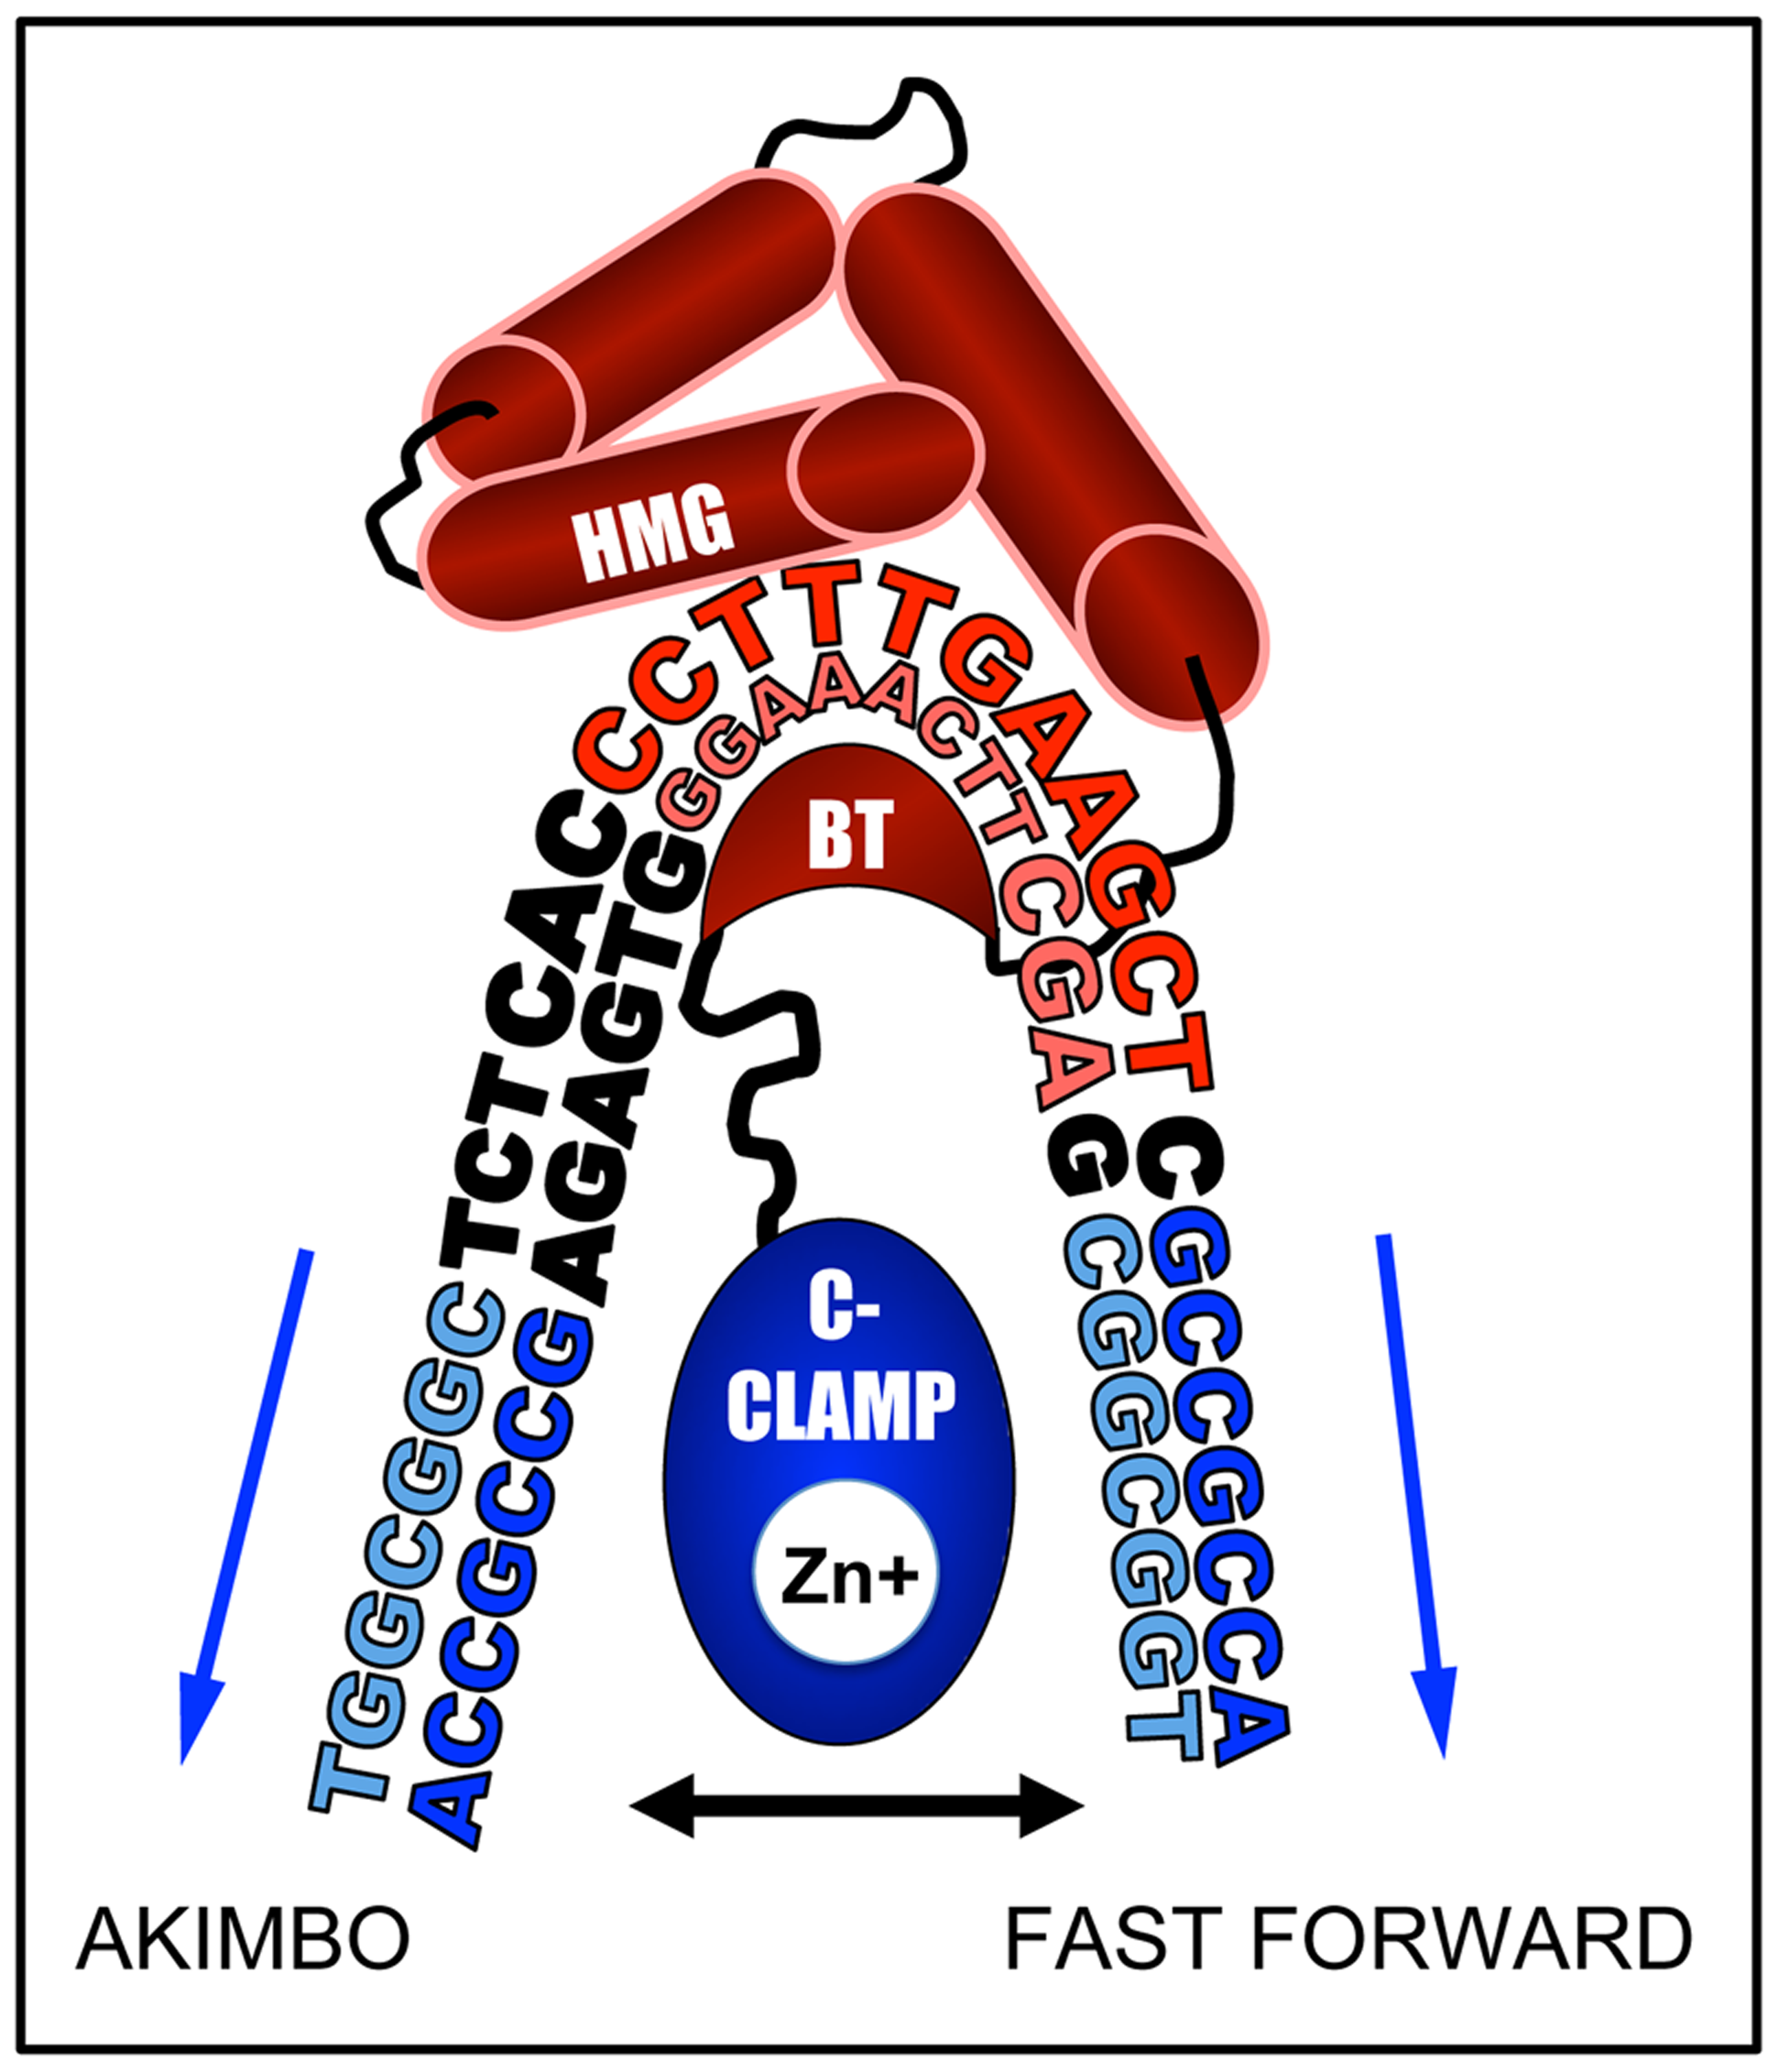 DNA bending by the HMG domain could explain preferential binding for AK6 and FF0 configurations.